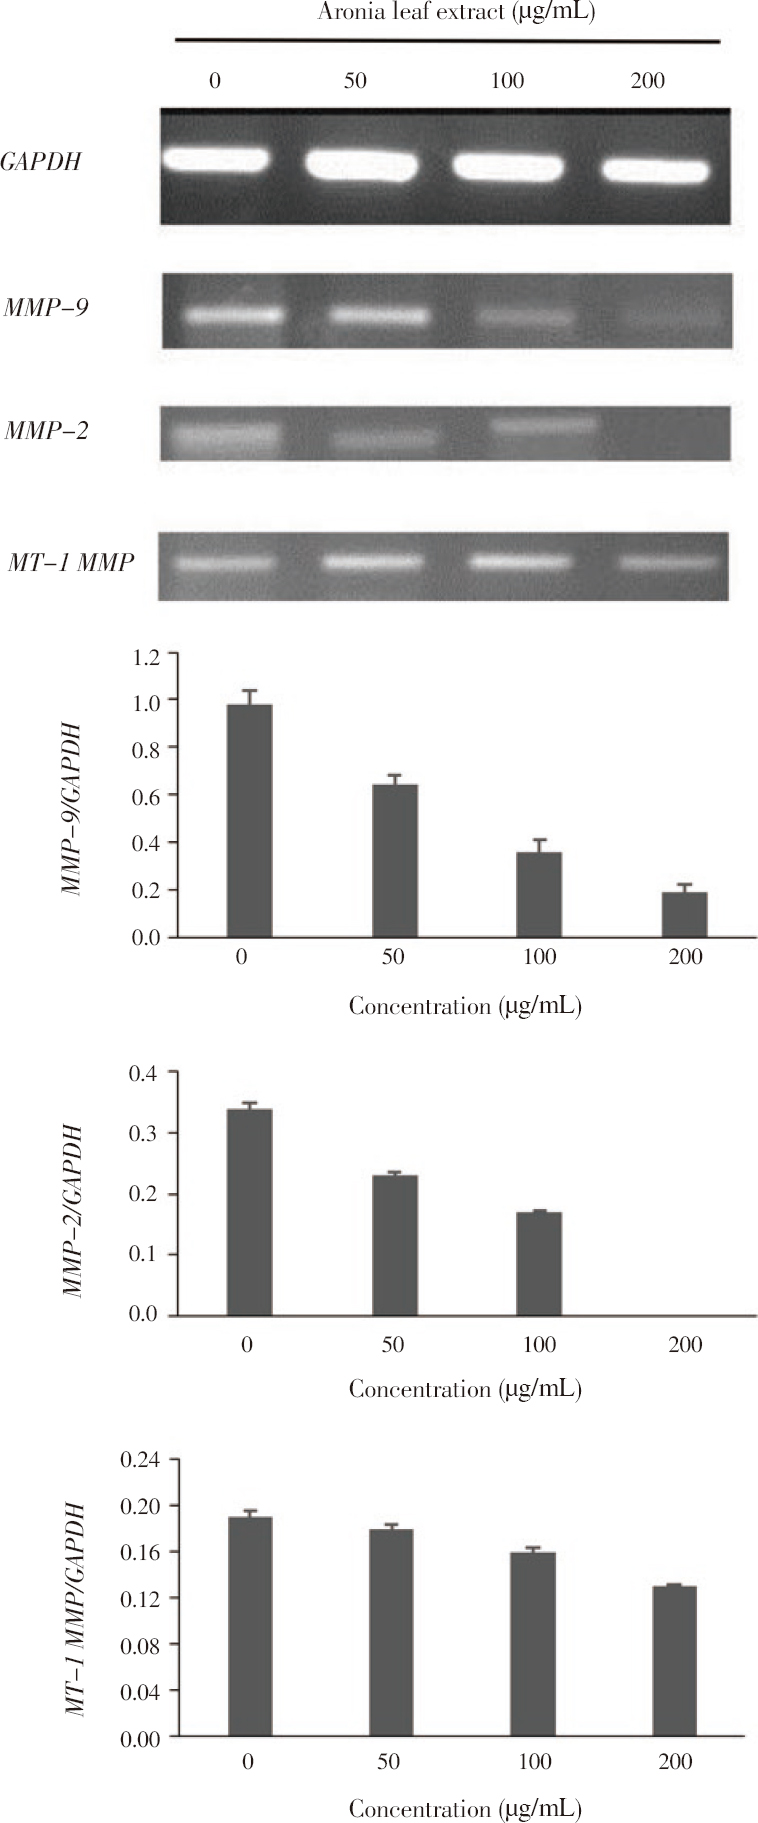 Figure 4: Effect of aronia leaf extract on <i>MMP-2/-9</i> and <i>MT-1 MMP</i> gene expression in SK-Hep1 human hepatoma cells.